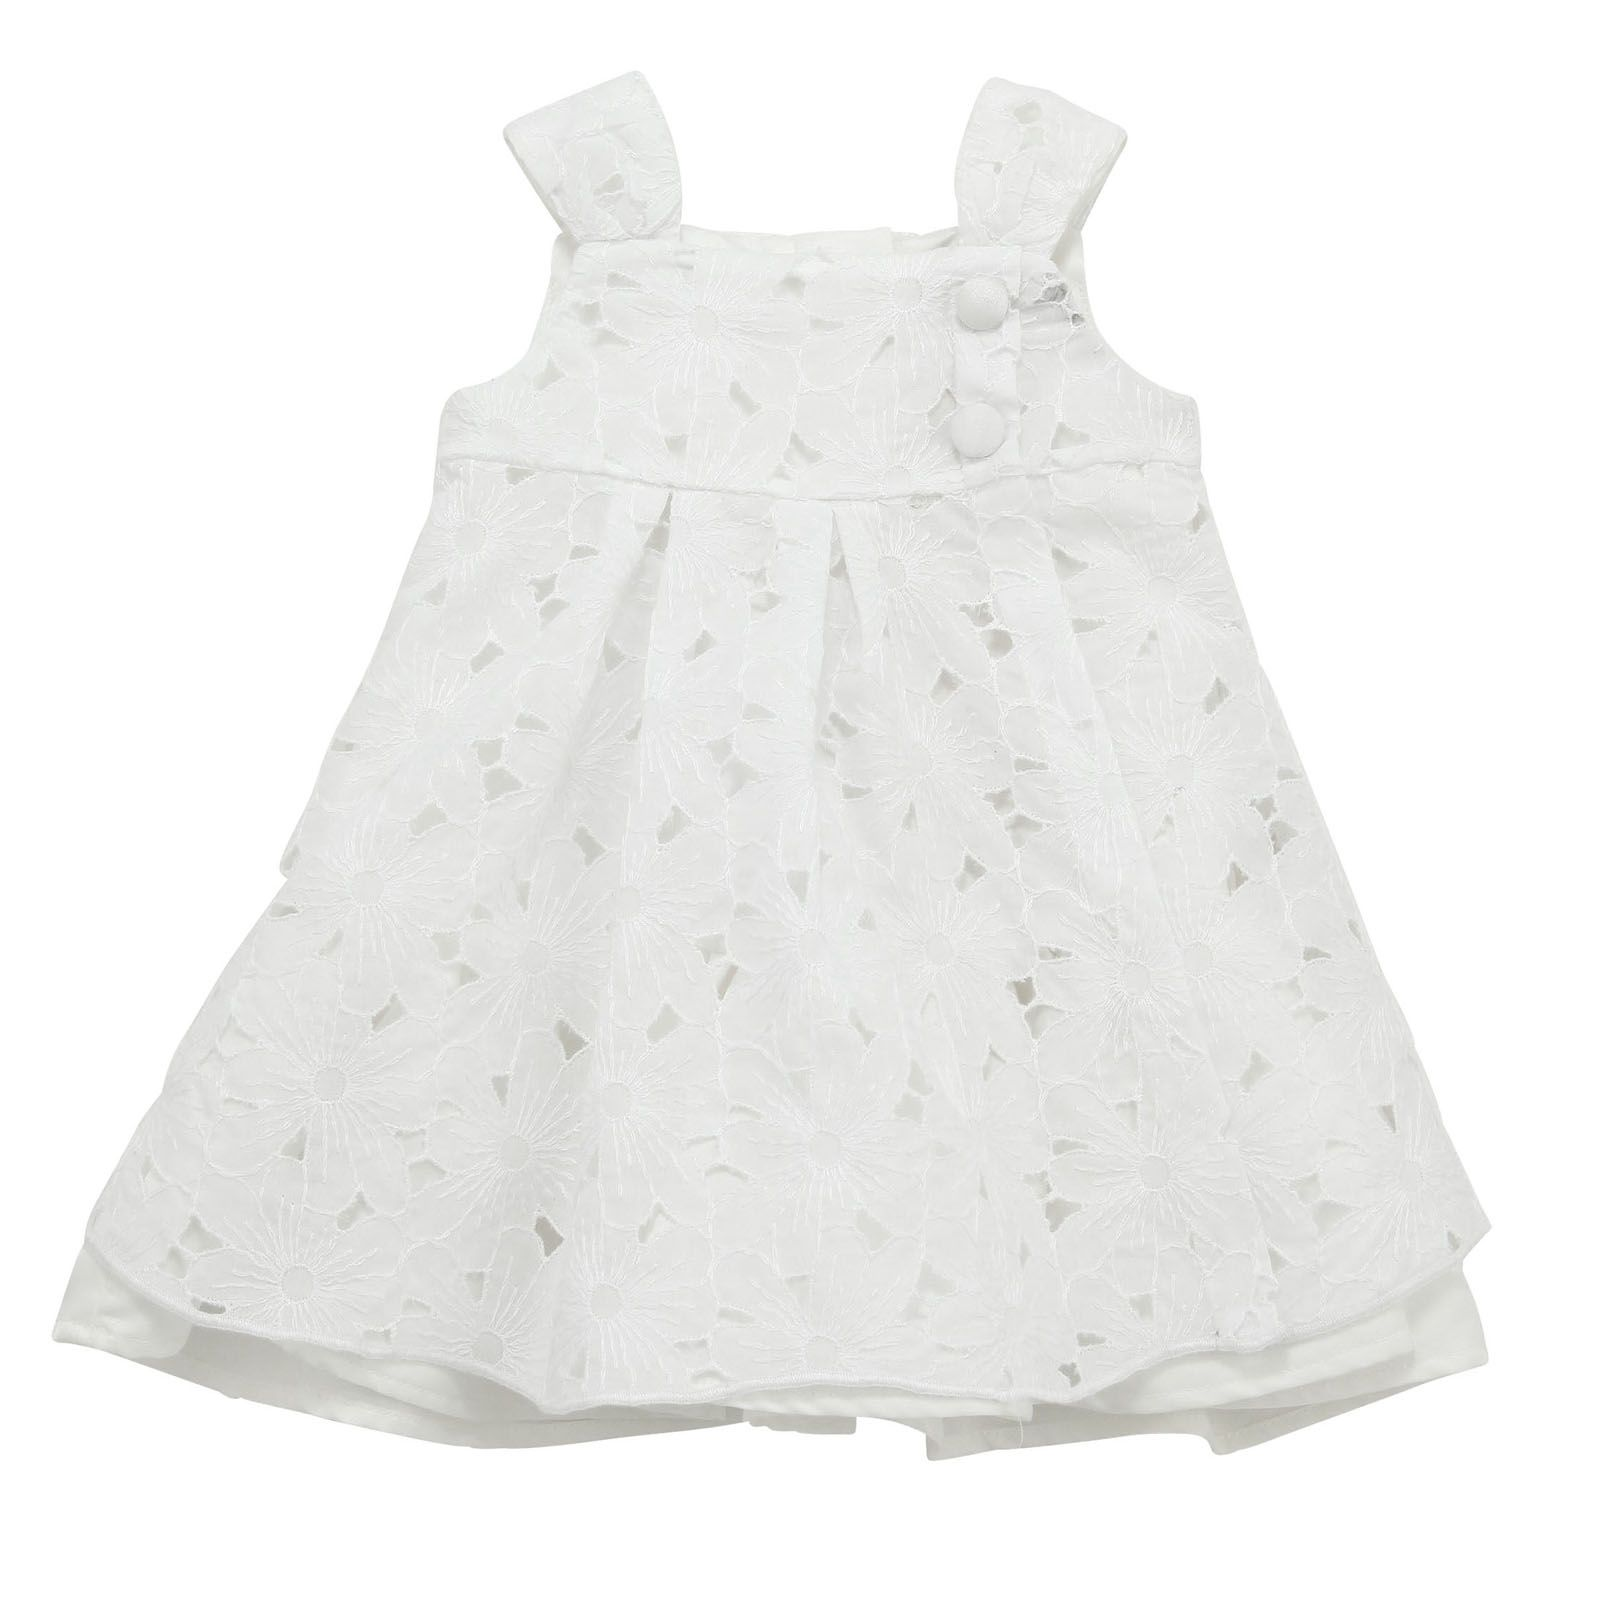 White Dress With Flower Shaped Openwork Patterns Straps And Square